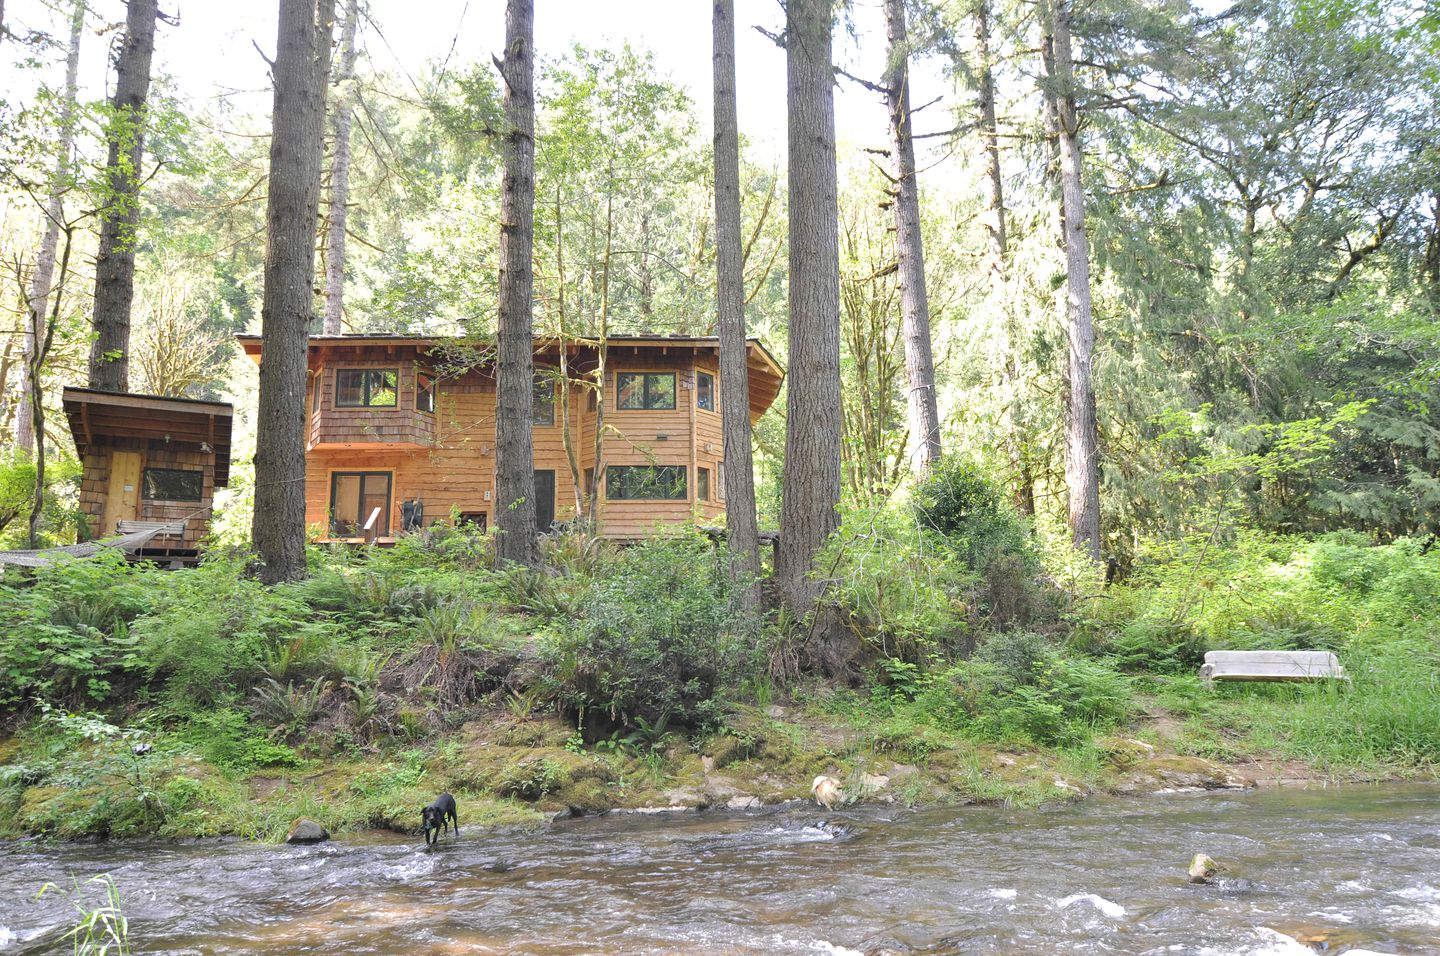 Cabins (Coos Bay, Oregon, United States)